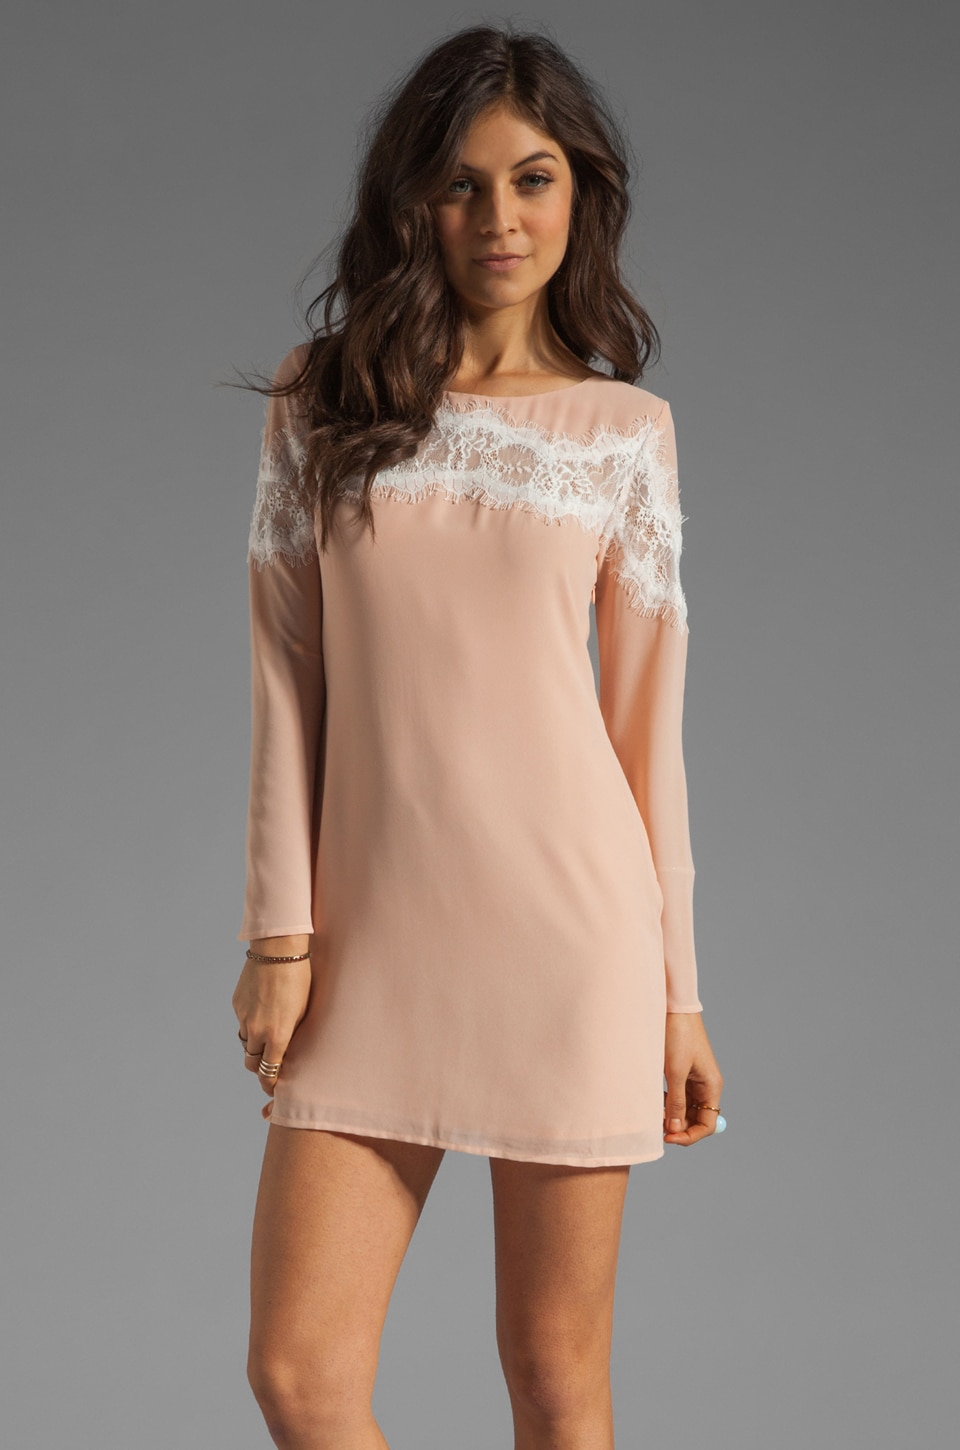 BLAQUE LABEL Long Sleeve Shift Dress in Nude